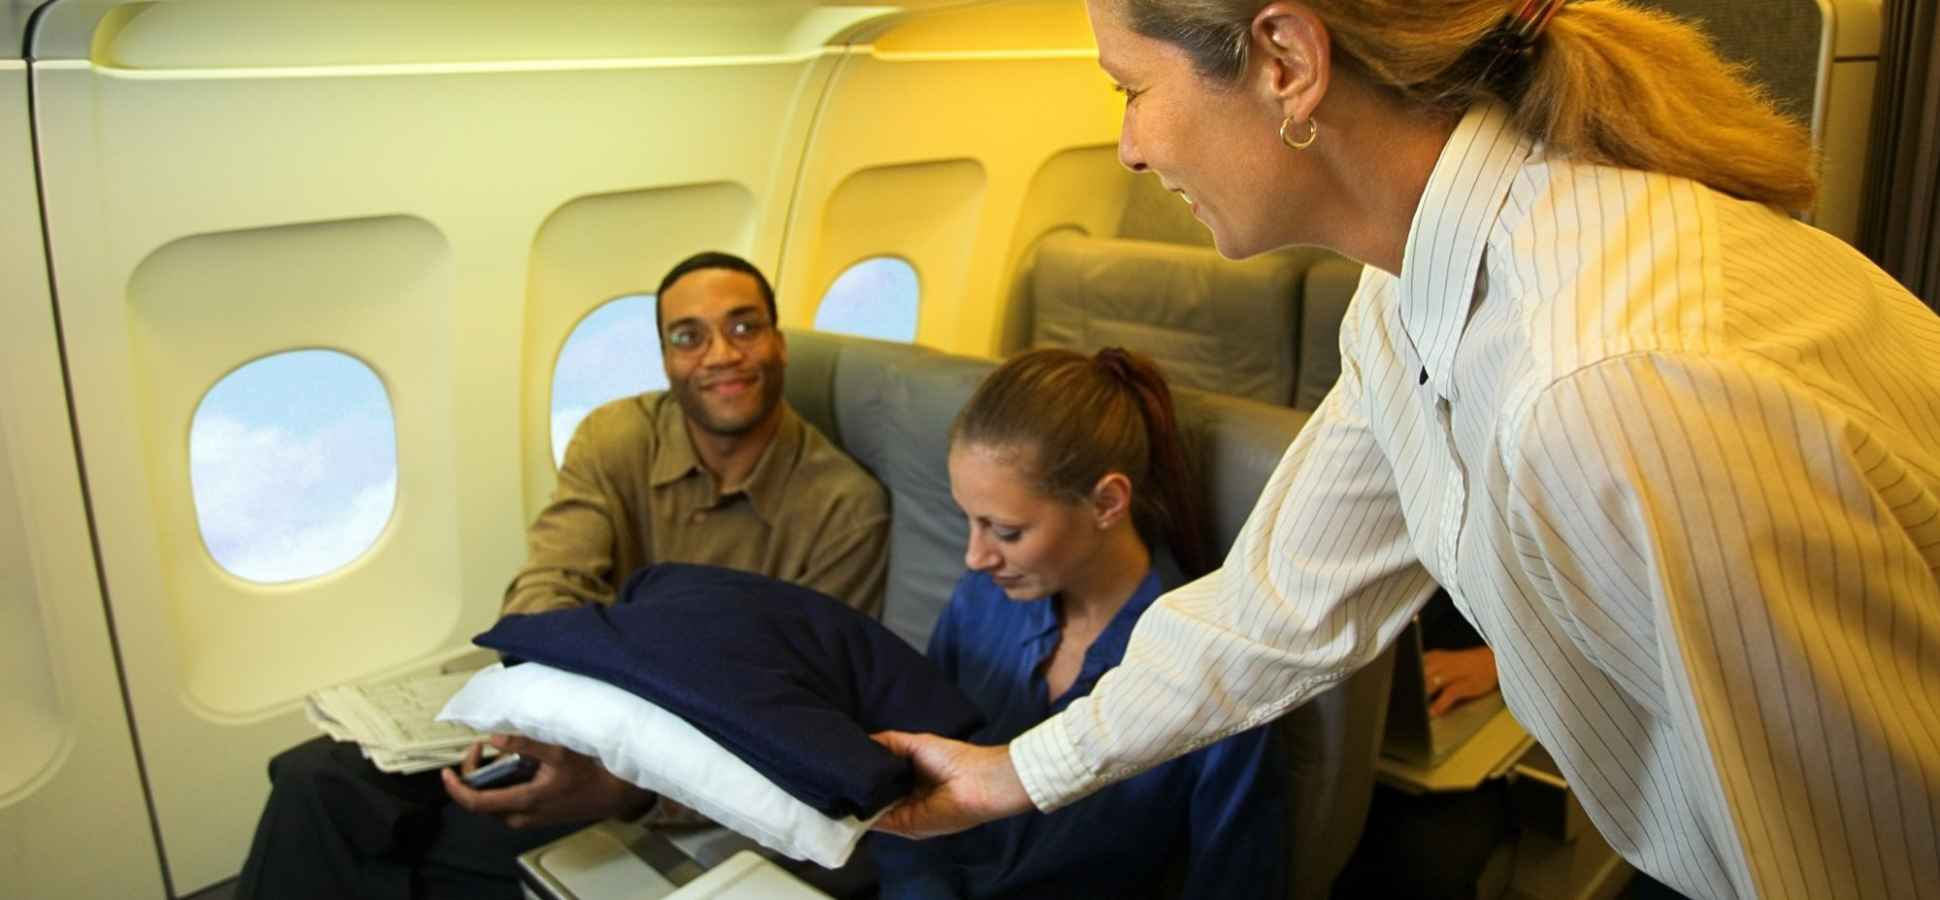 Here's What Happened After an Airline Demanded a Passenger Pay $12 for a Blanket (It Was Chilling)